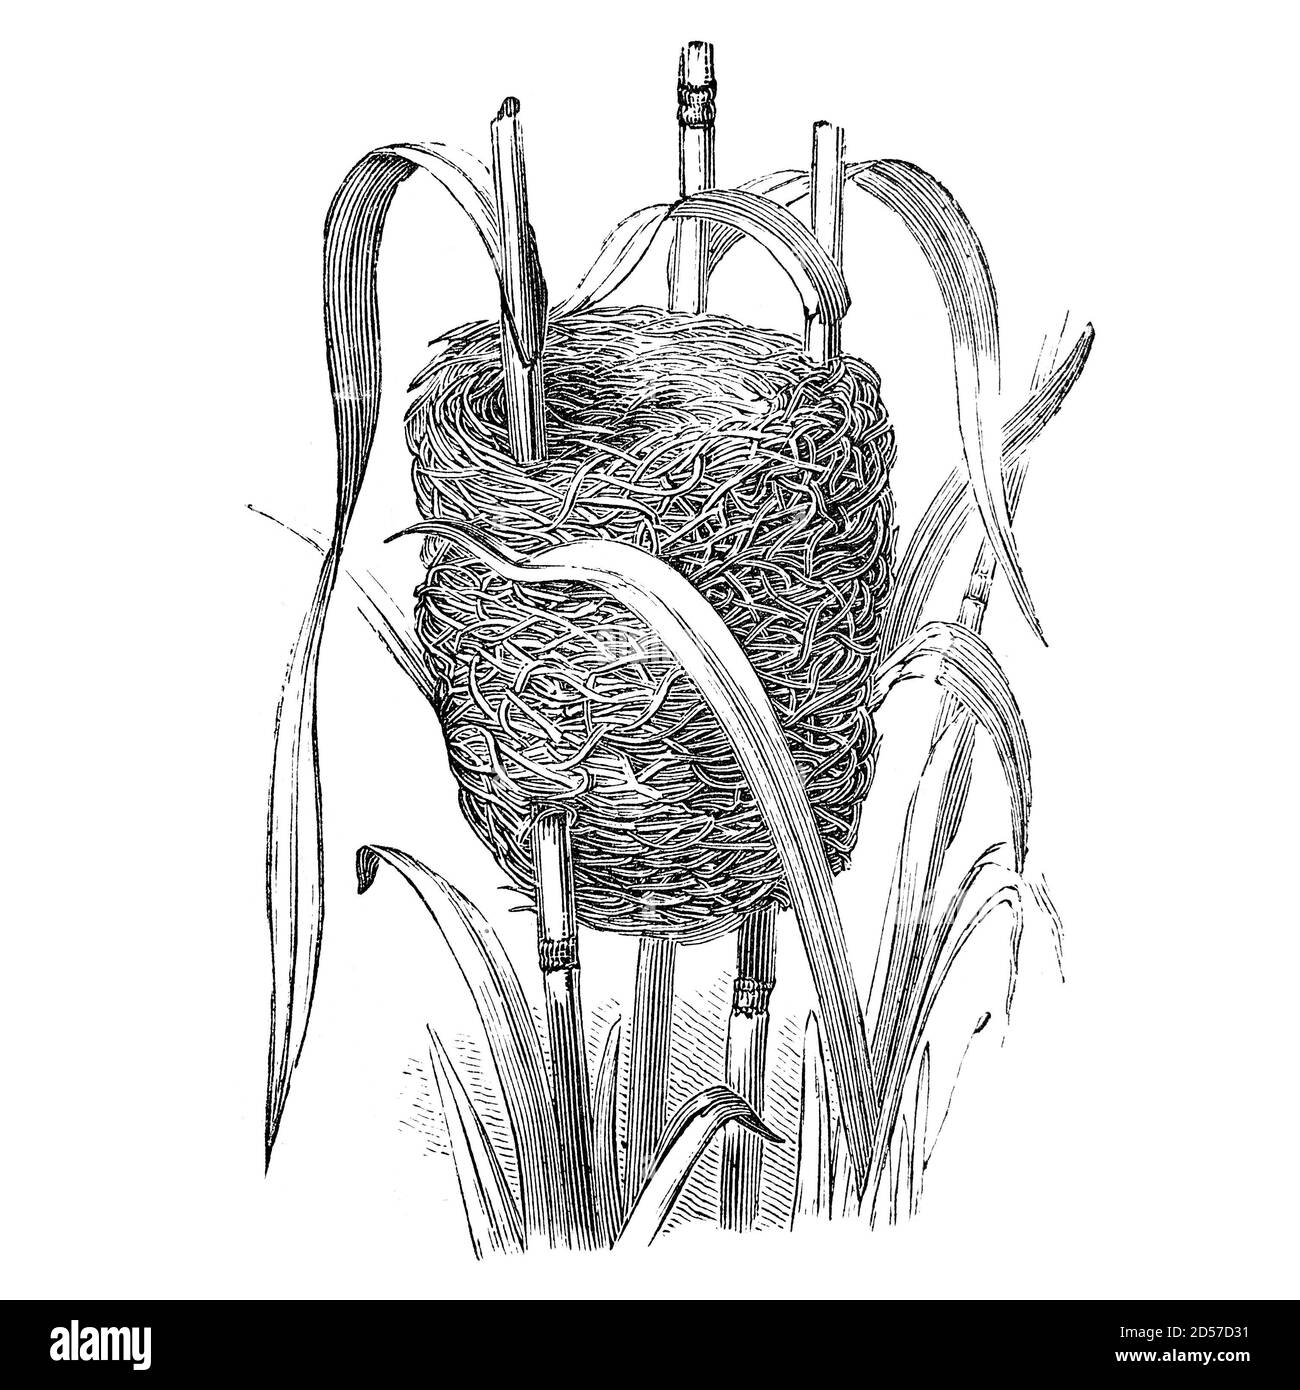 """Nest of reed bunting bird, vintage illustration. Sourced from antique book """"The Playtime Naturalist"""" by Dr. J.E. Taylor, published in London UK, 1889. Stock Photo"""